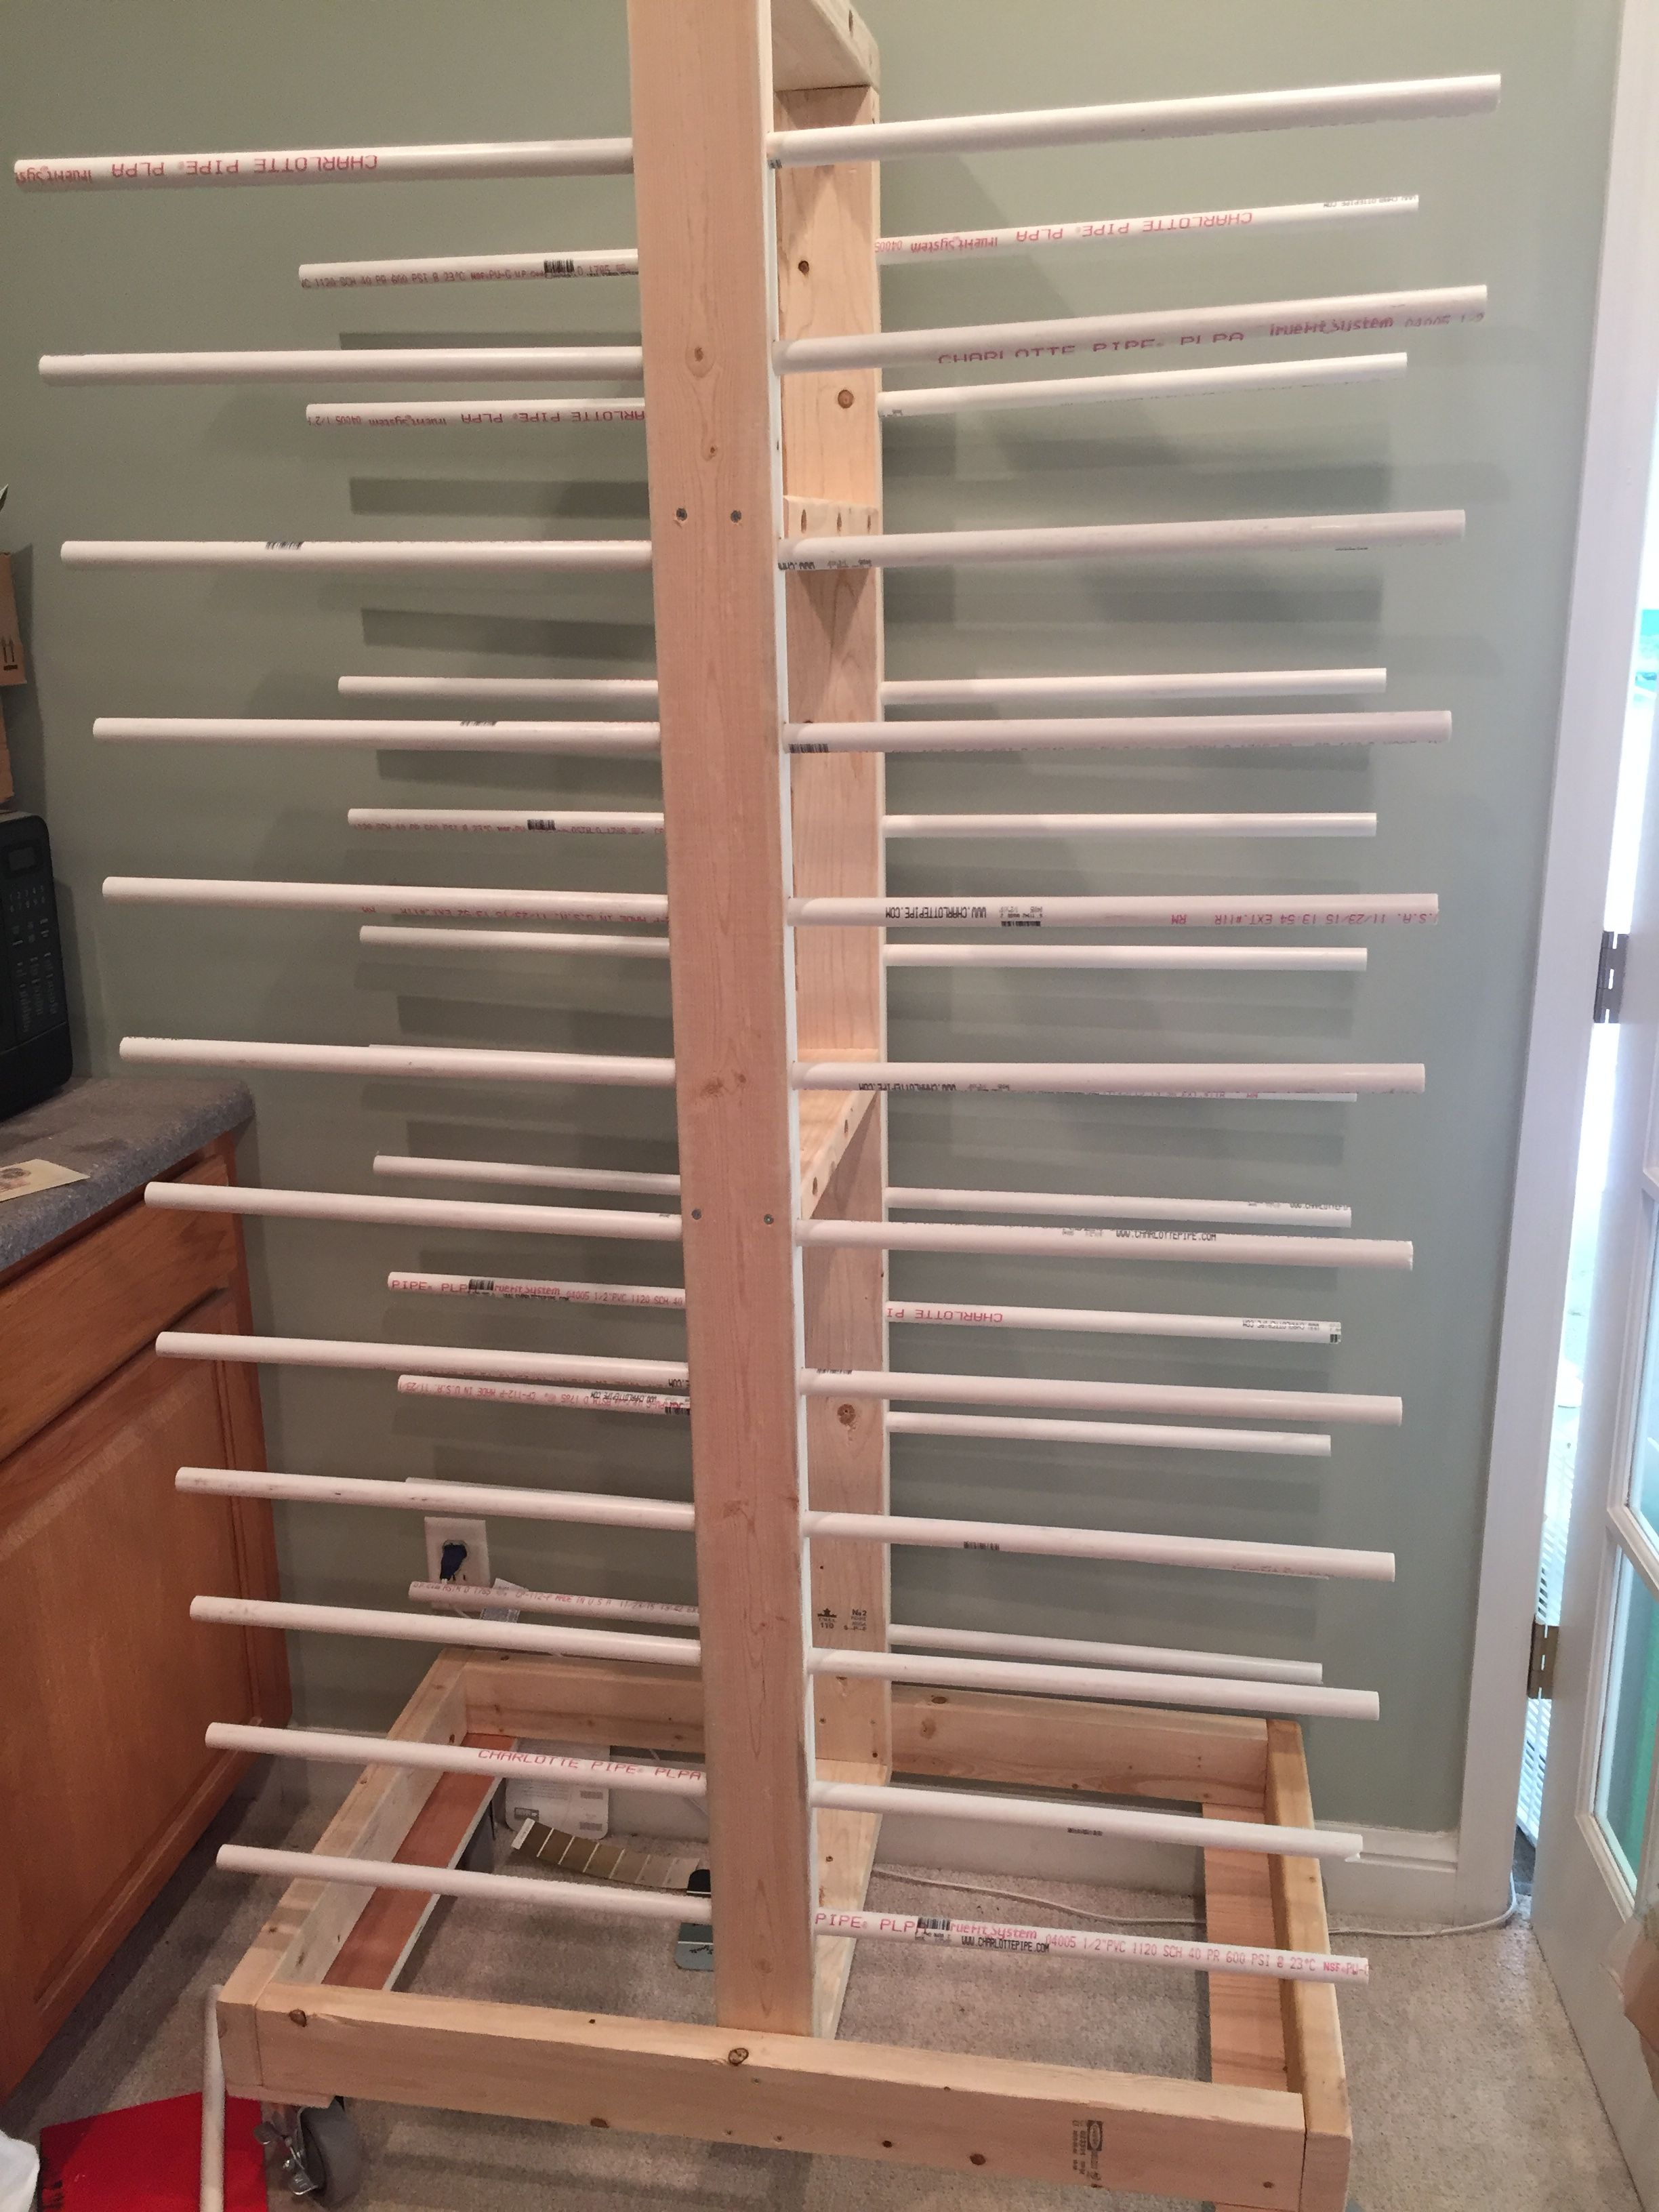 Cabinet Door Drying Rack Magnificent Diy Cabinet Door Drying Rack From Pvc Pipe & 2X4 Lumber Wood Inspiration Design